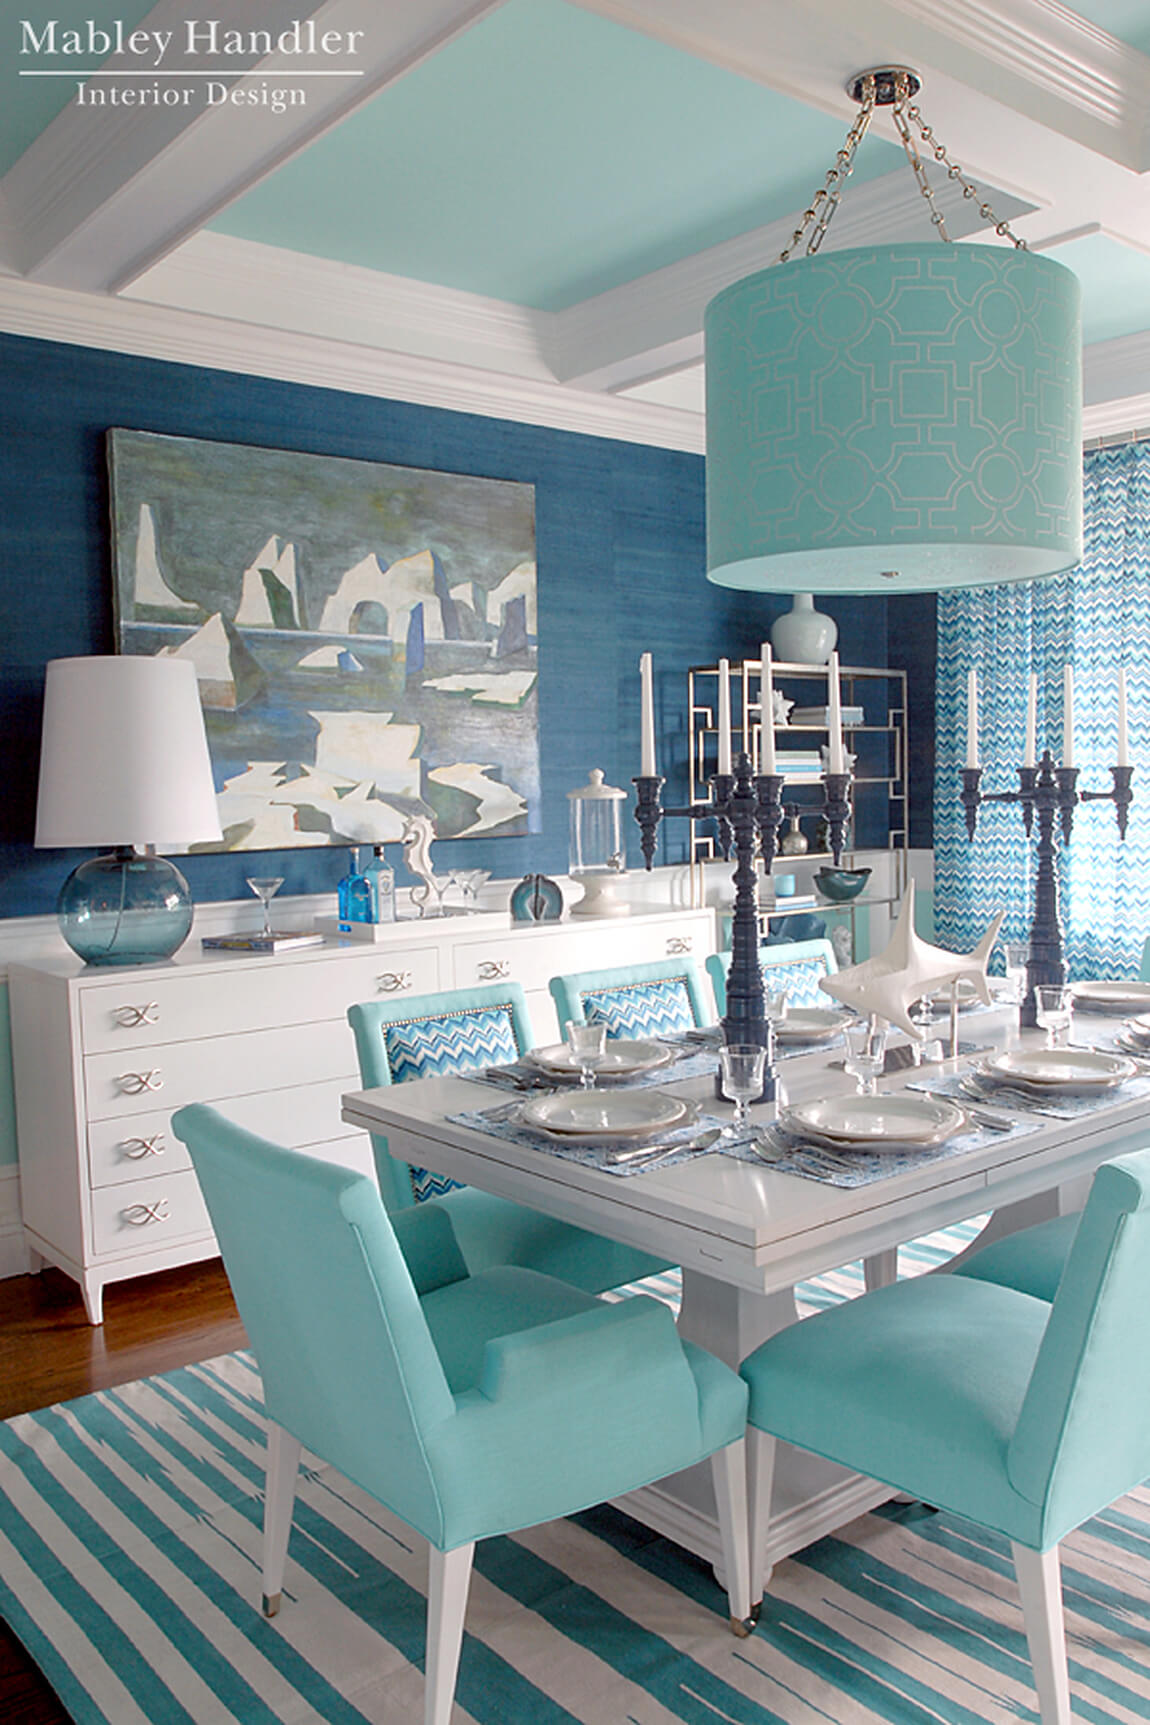 Ocean Home Decor decoration ideas in ocean blue and brown design ideas for home decor 1 Cool Sea Blues Compliment Your Dining Space